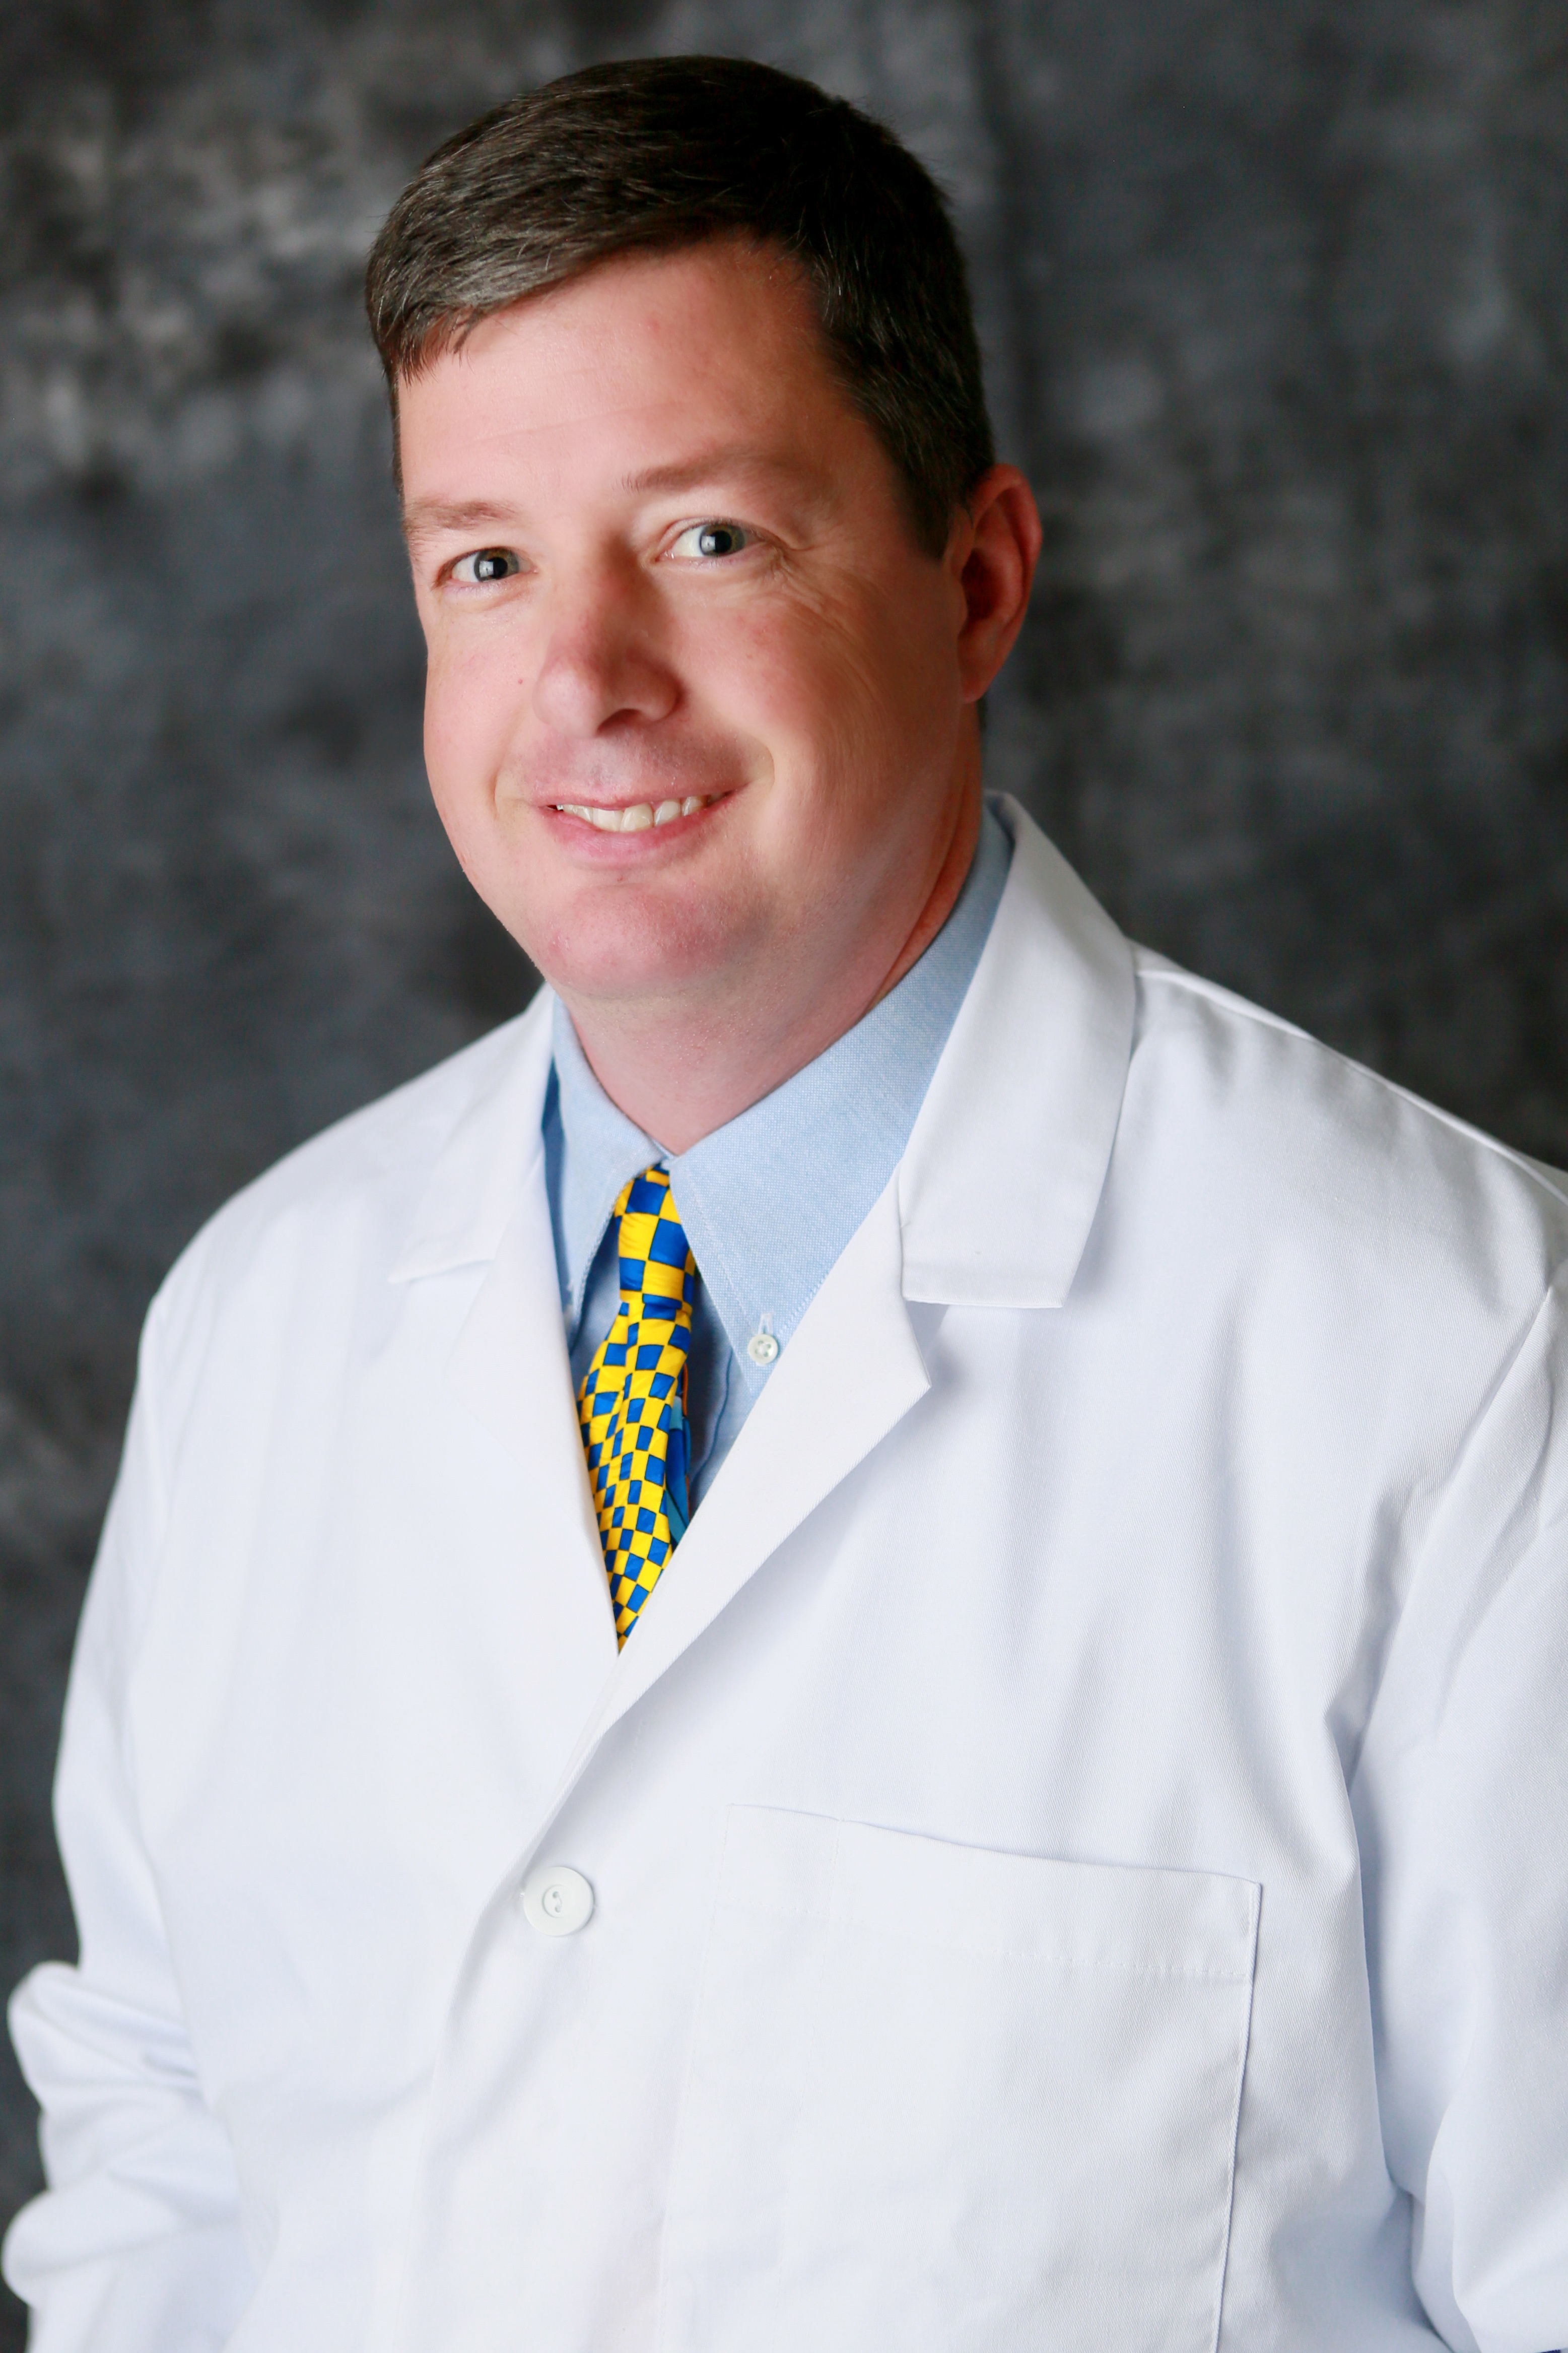 Photo of Chris Stansell, MSN, APRN, FNP-C, CFN, CTRN, CCRN, CFRN